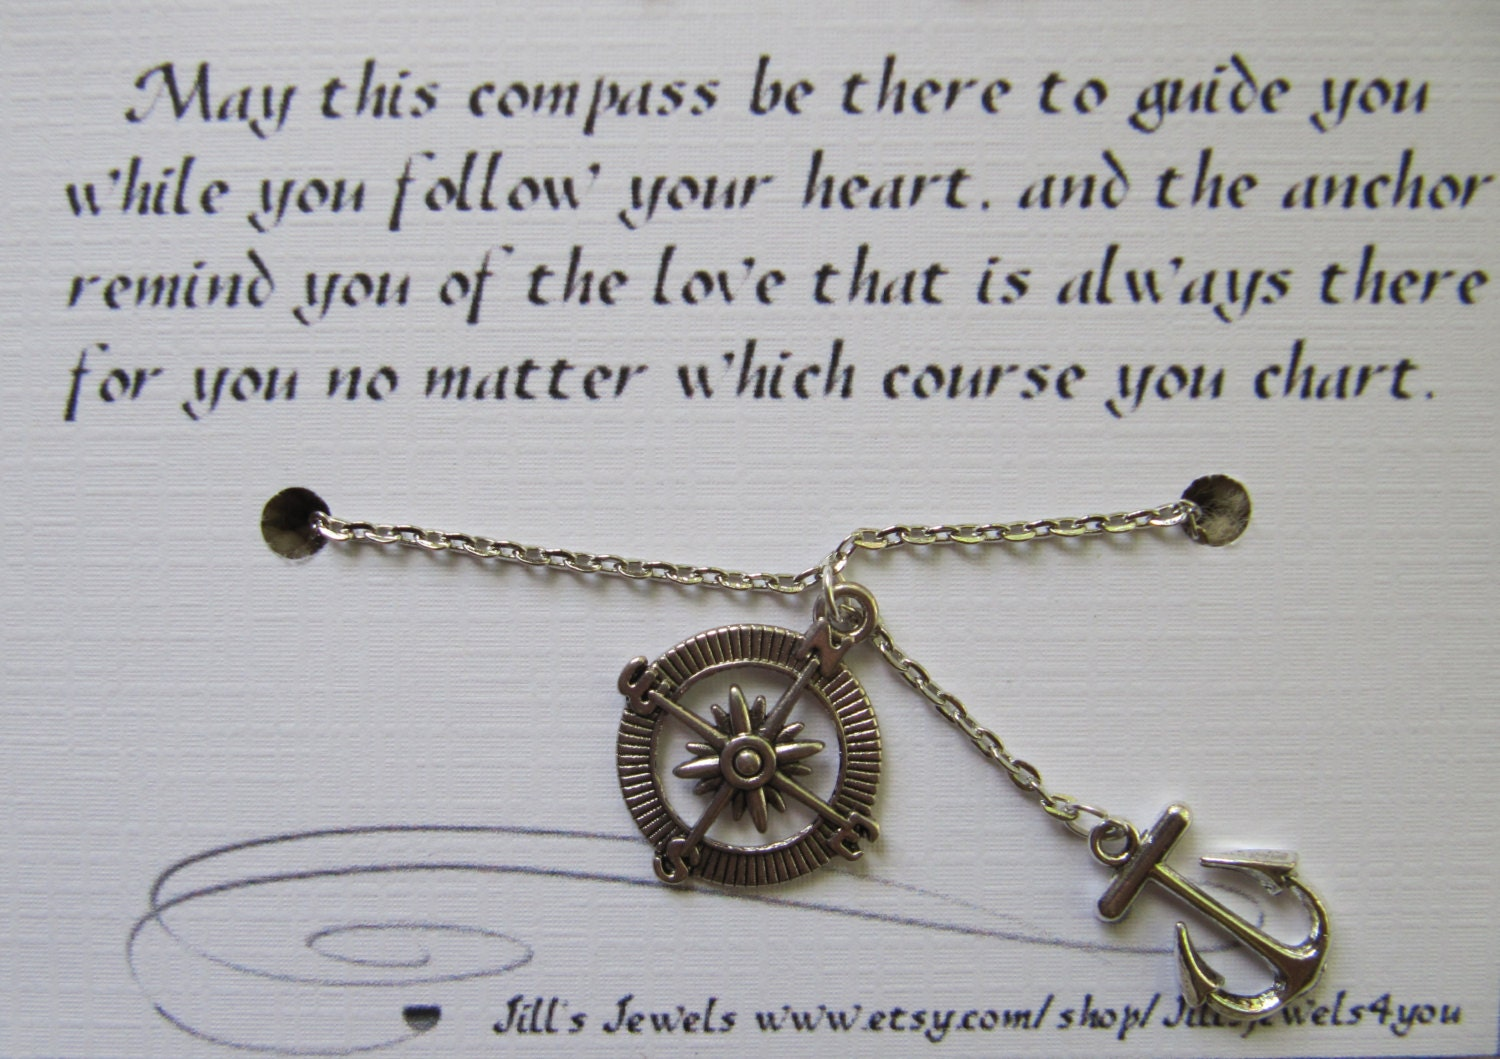 Quotes About Distance Friendship Best Friend Compass And Anchor Charm Necklace And Friendship